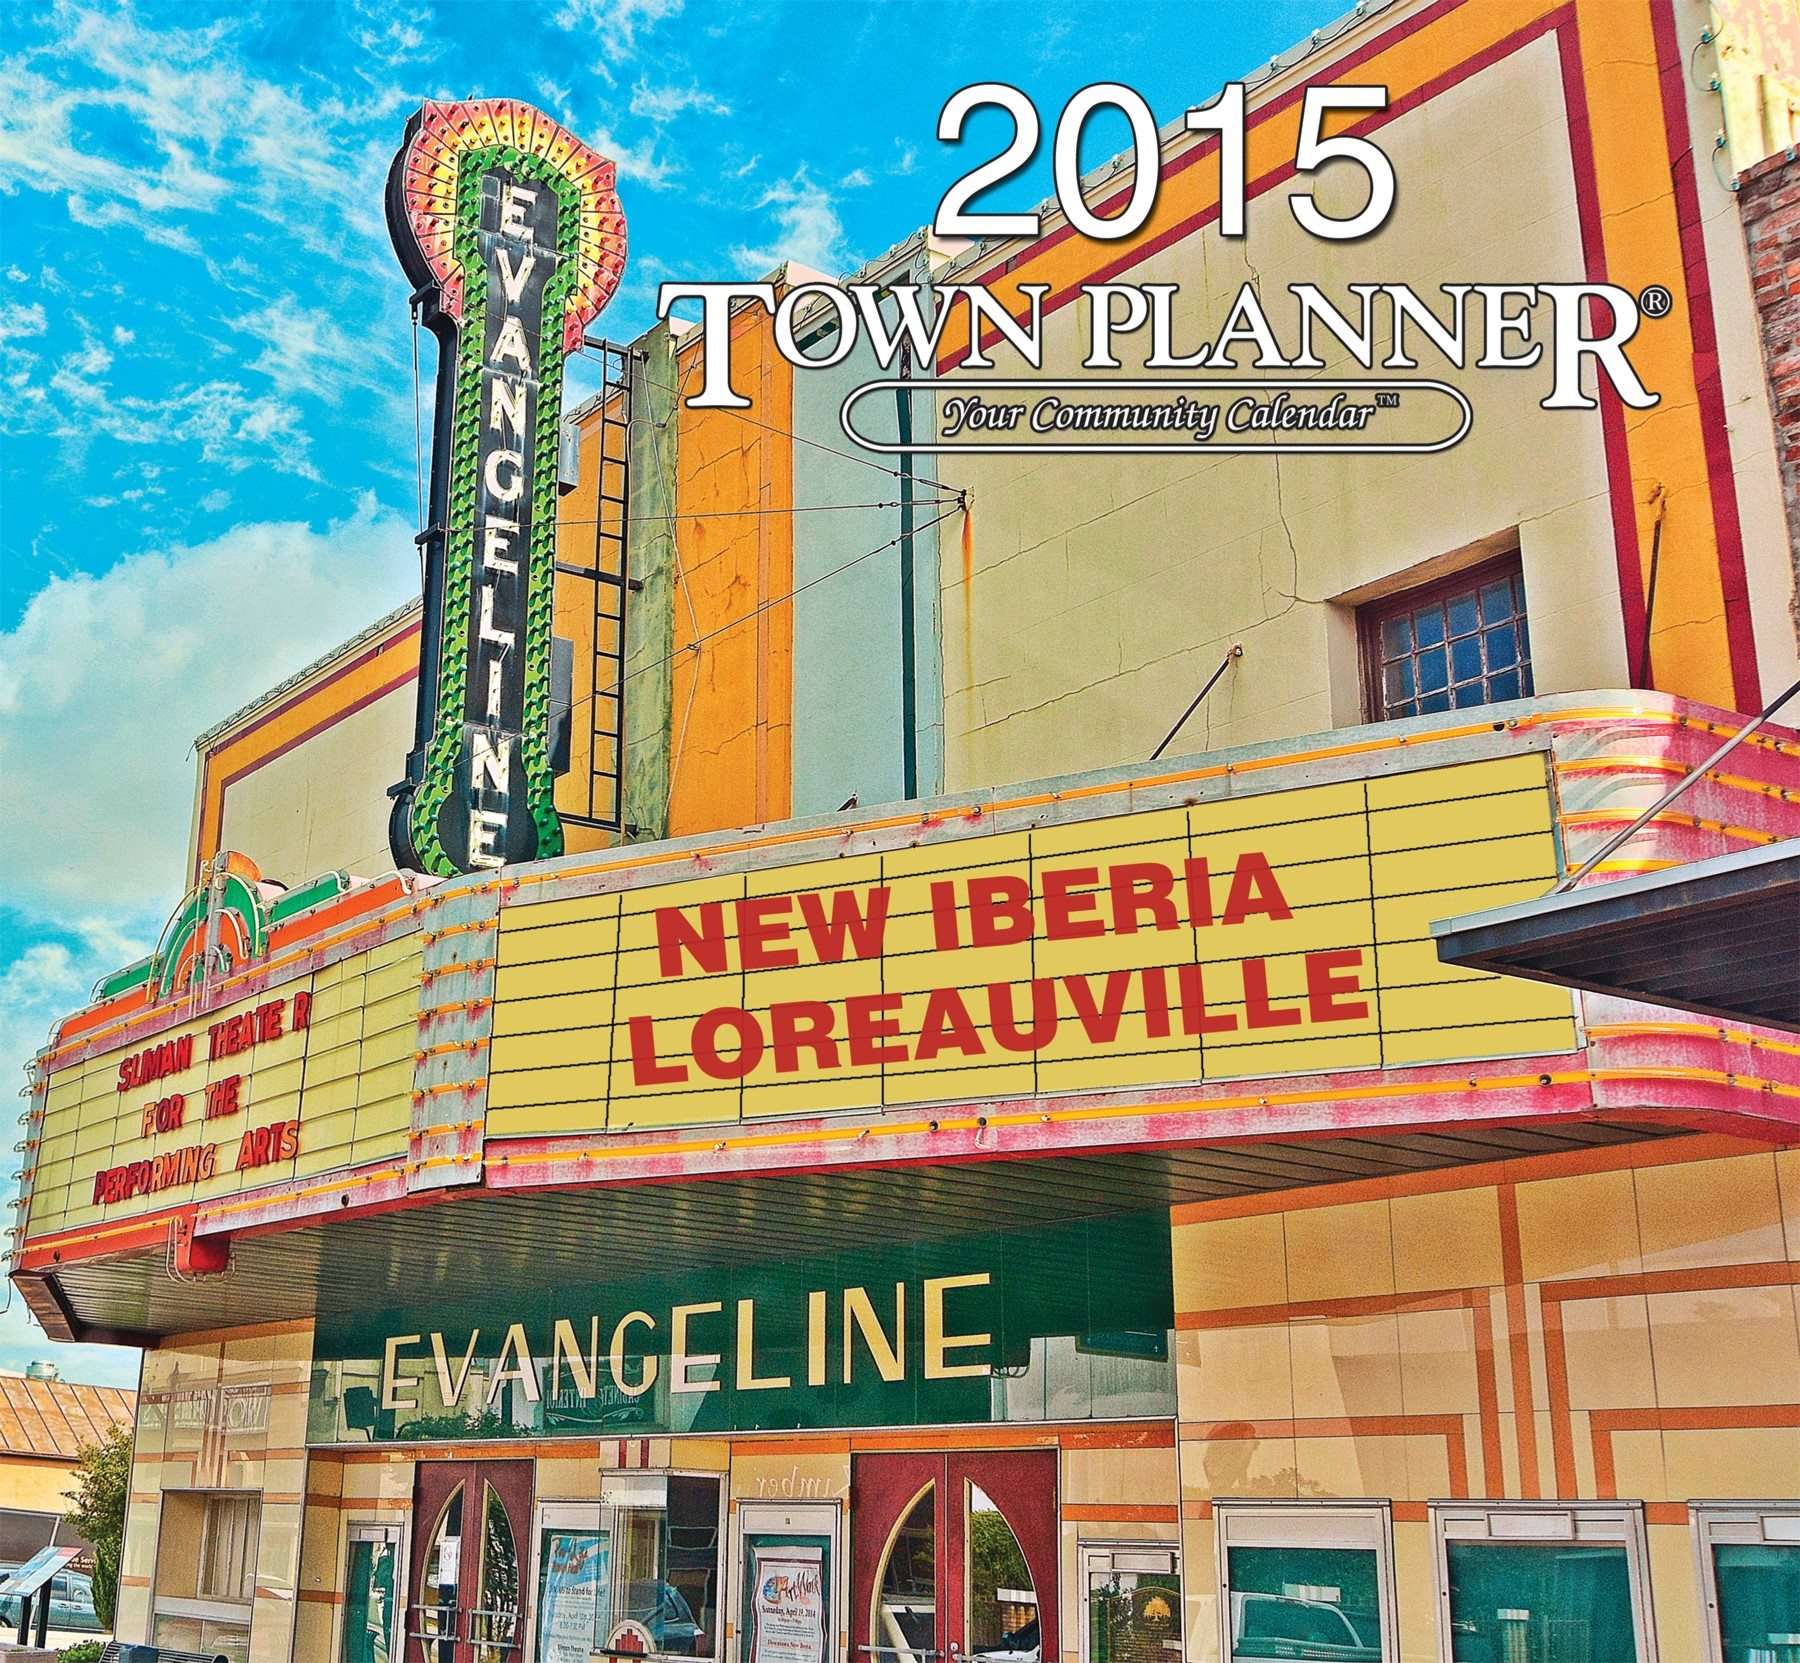 New Iberia/Loreauville Edition Calendar Cover - Photo by Kevin Ste Marie